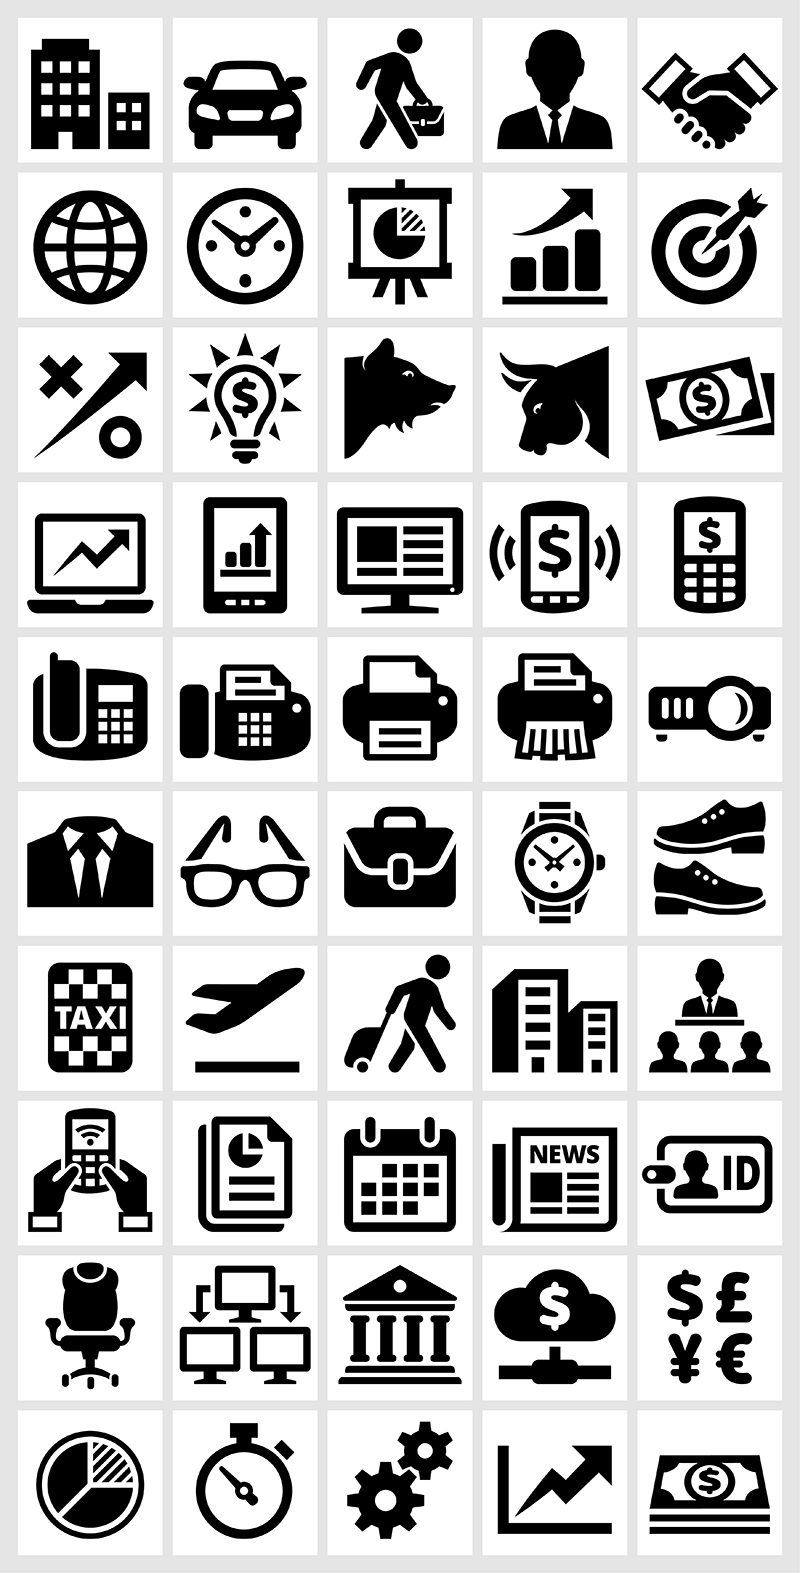 Business and Finance black & white vector icon set